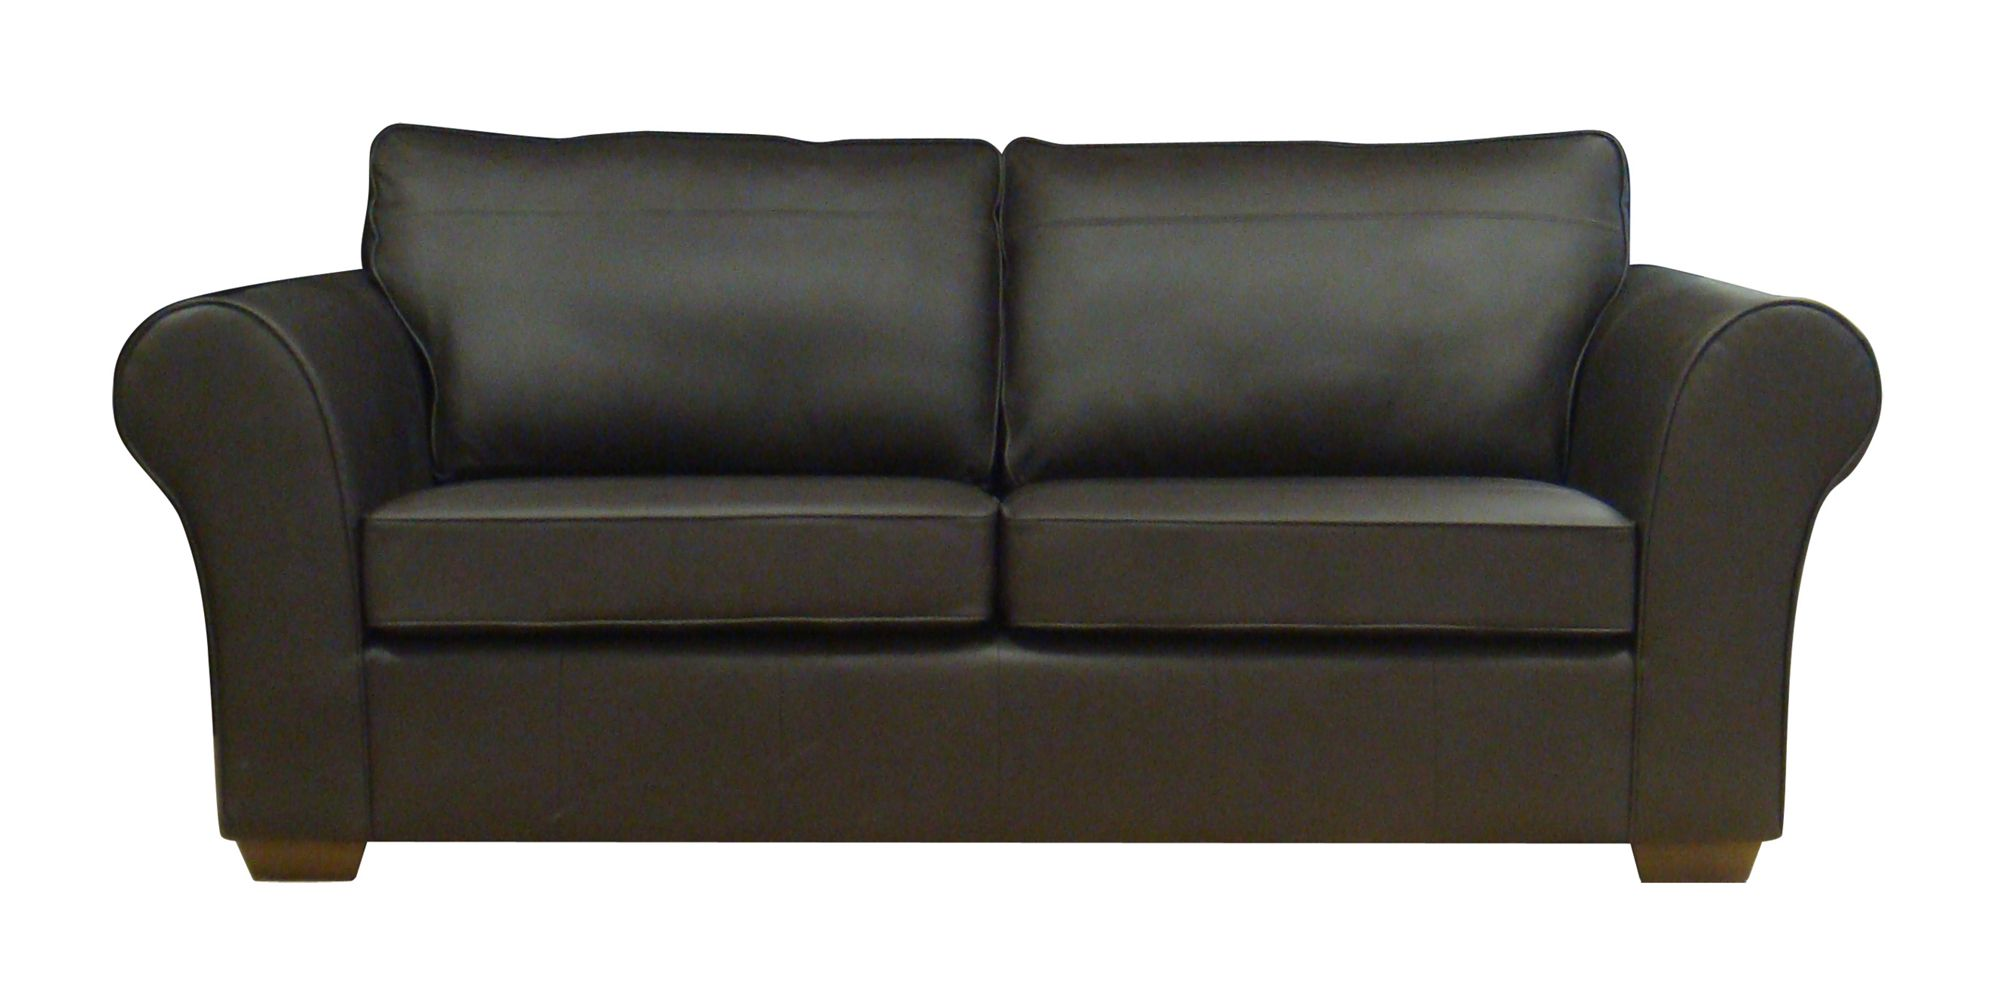 Sofa And Recliner Chair Returns From The Uk